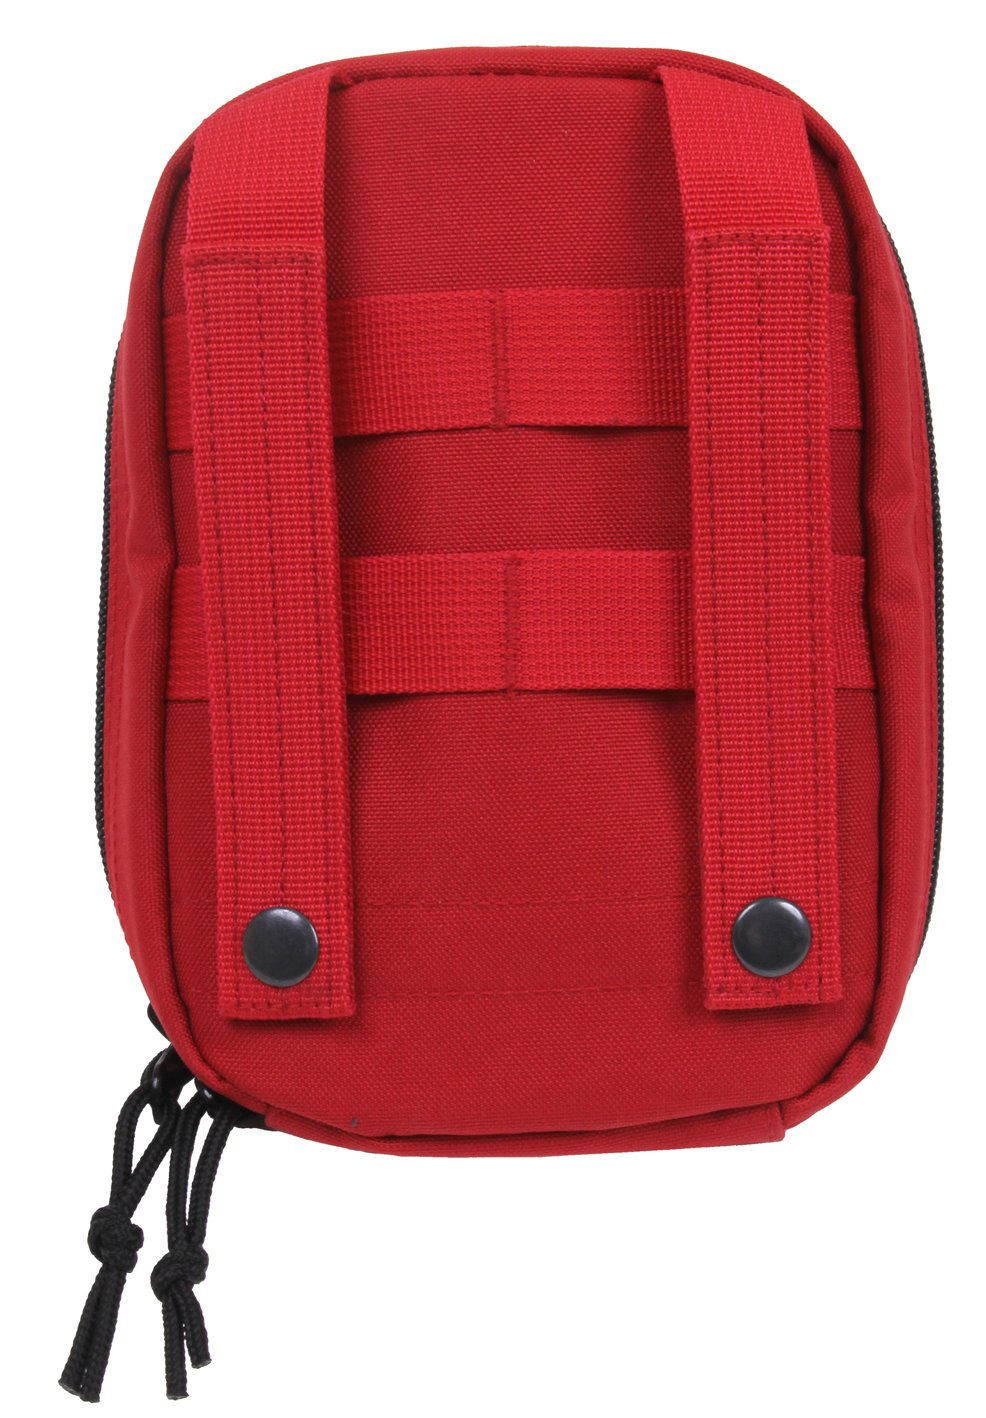 Rothco MOLLE Tactical Trauma Kit, Red by Rothco (Image #2)